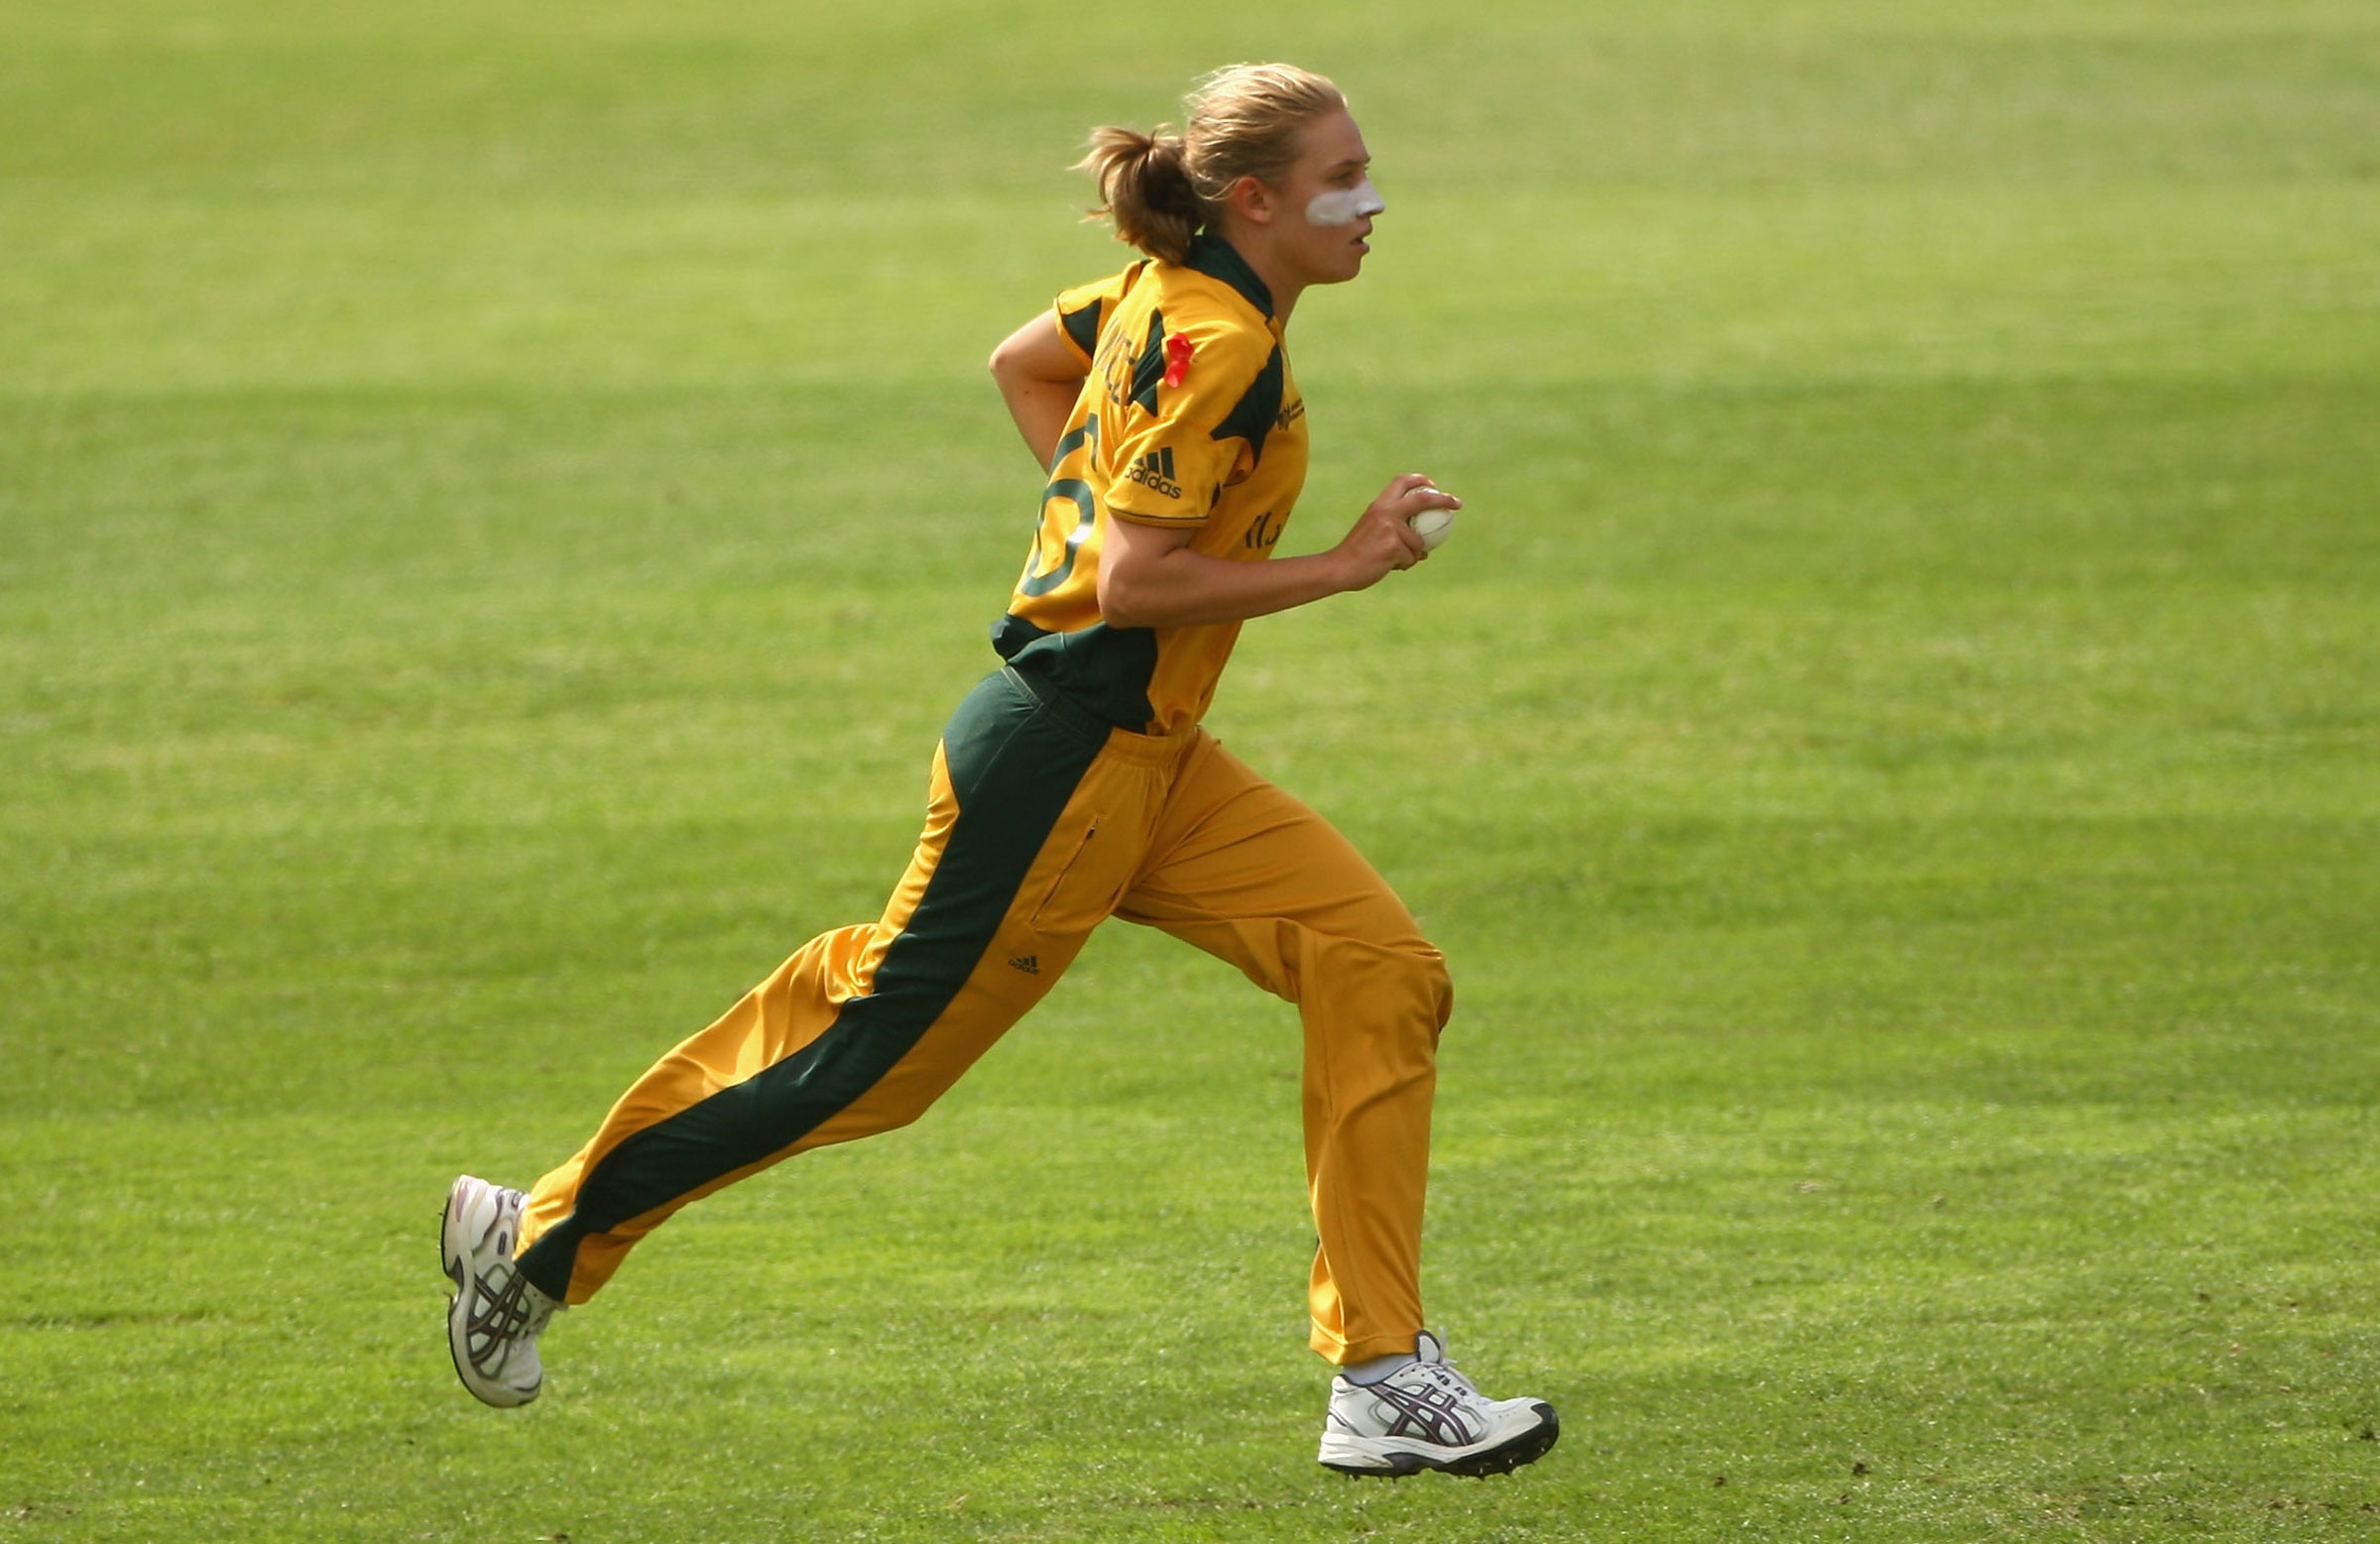 Kimmince runs in during the 2009 World Cup // Getty